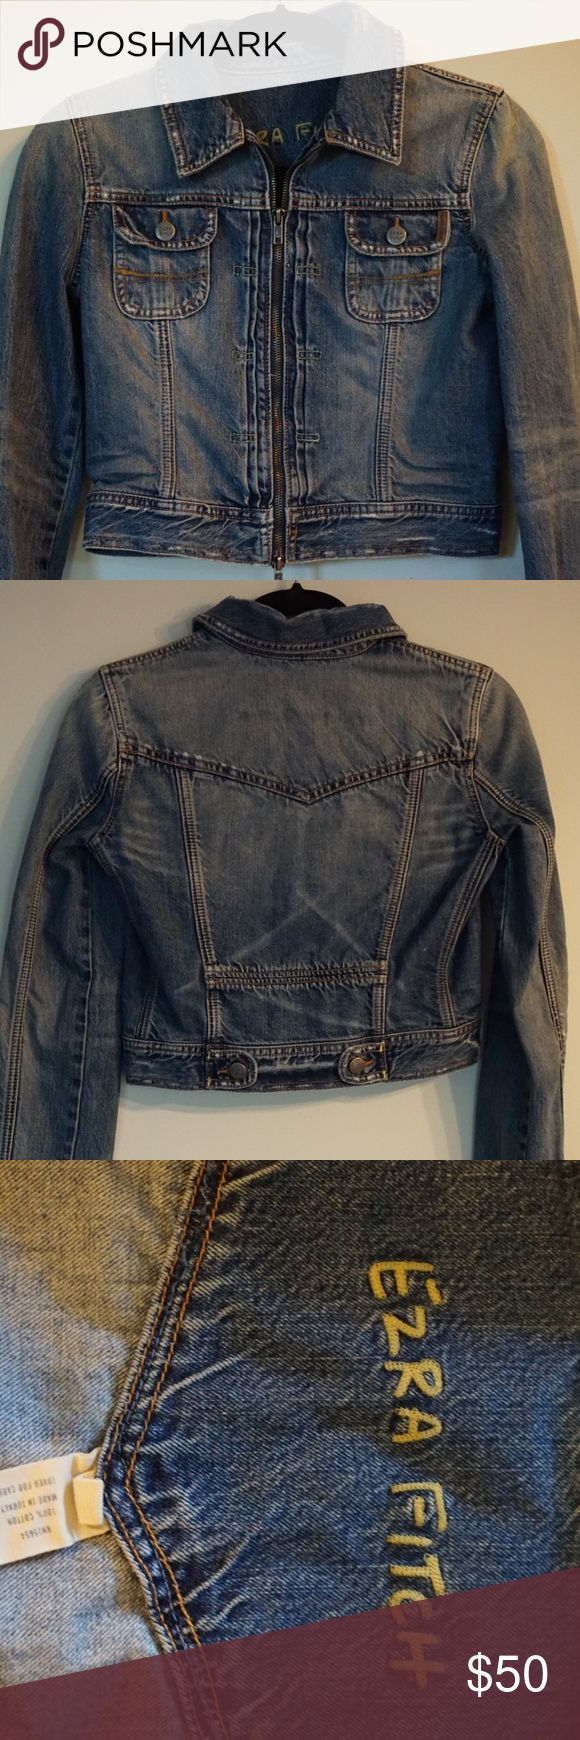 Cropped Abercrombie and Fitch jean jacket Cropped Abercrombie and Fitch jean jacket. Only worn a few times. In great condition. Abercrombie & Fitch Jackets & Coats Jean Jackets